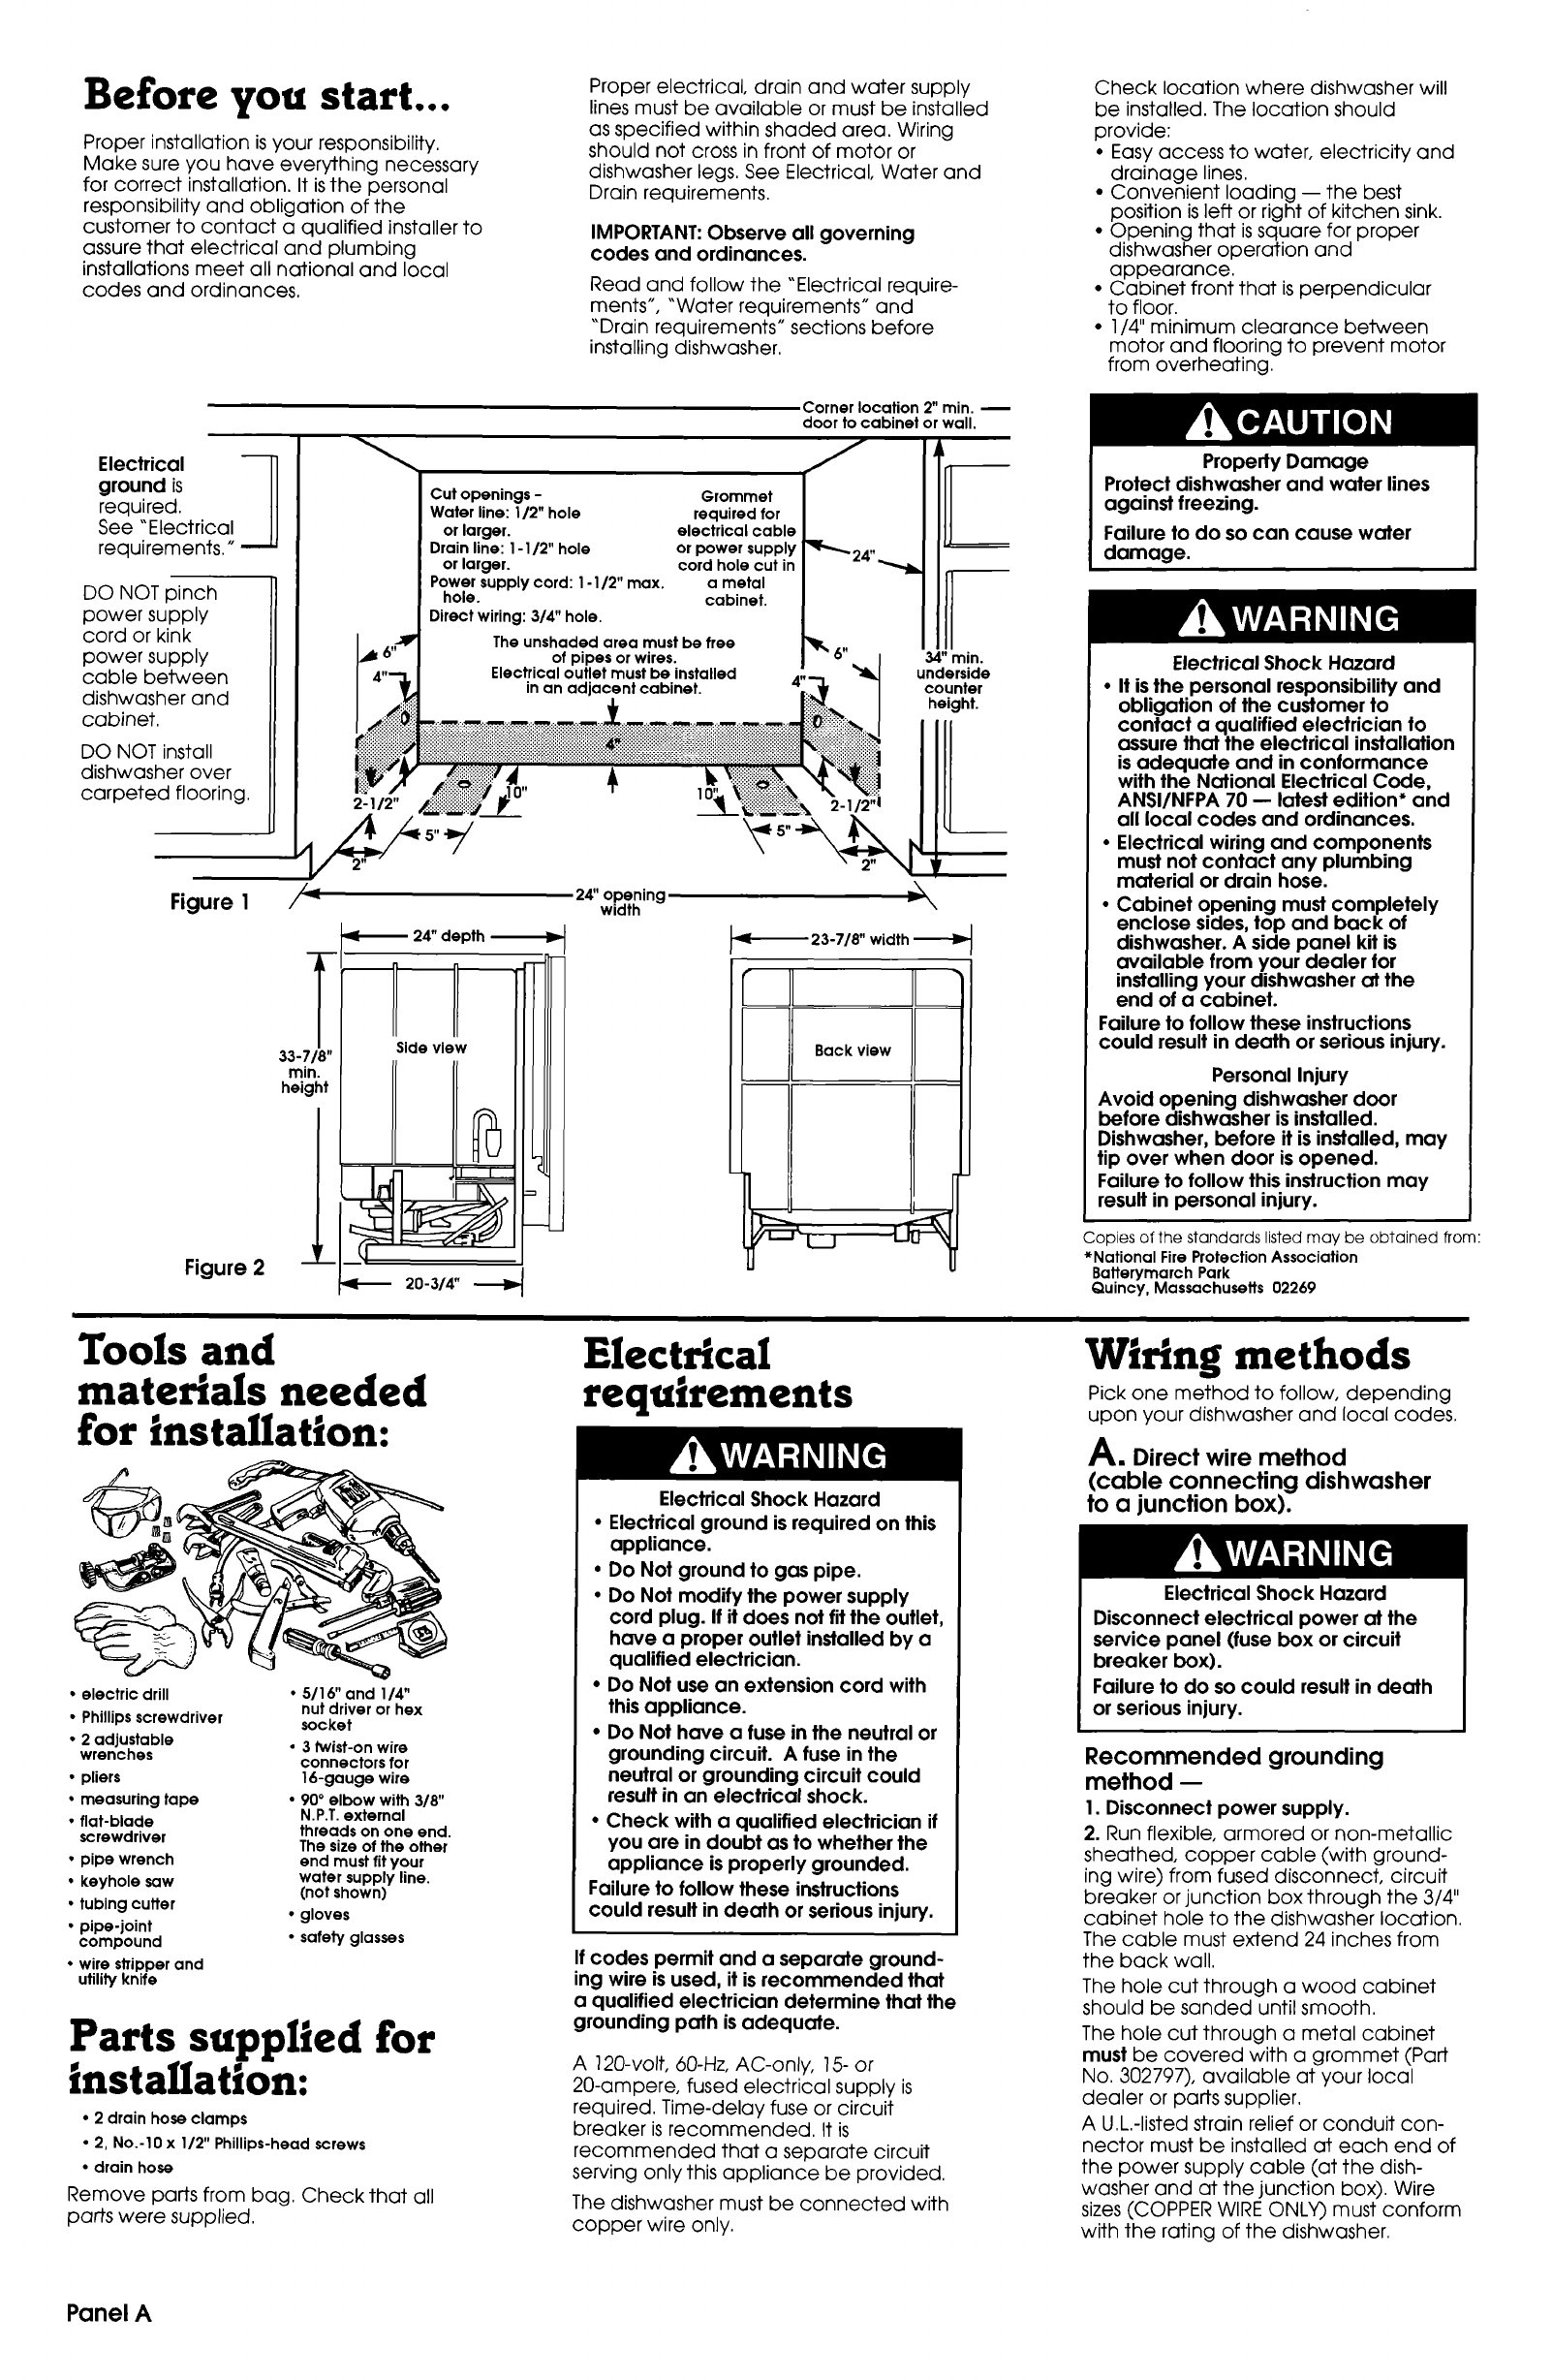 2002 Buick Rendezvous Sunroof Drain Diagram